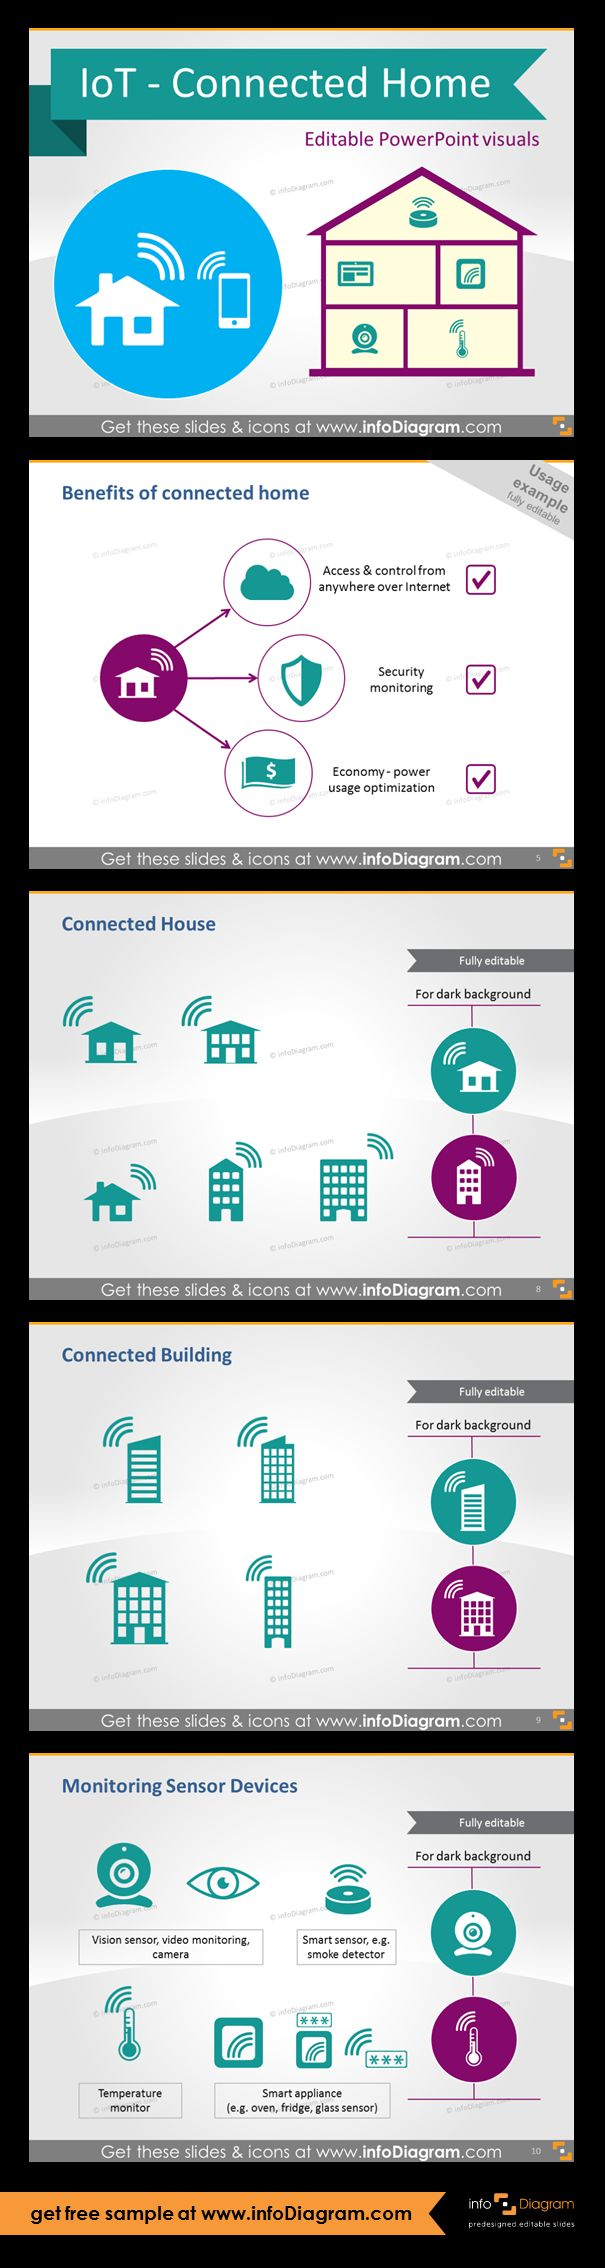 IoT - Connected home graphics. Connected Intelligent House equipment symbols for PowerPoint. Different types of connected houses and connected buildings (garage, family house, office building). Monitoring sensors device: vision sensor, video monitoring, camera, smart sensor, smoke detector. Smart home control and benefits of connected home diagram. Symbols of security monitoring and power usage optimization.